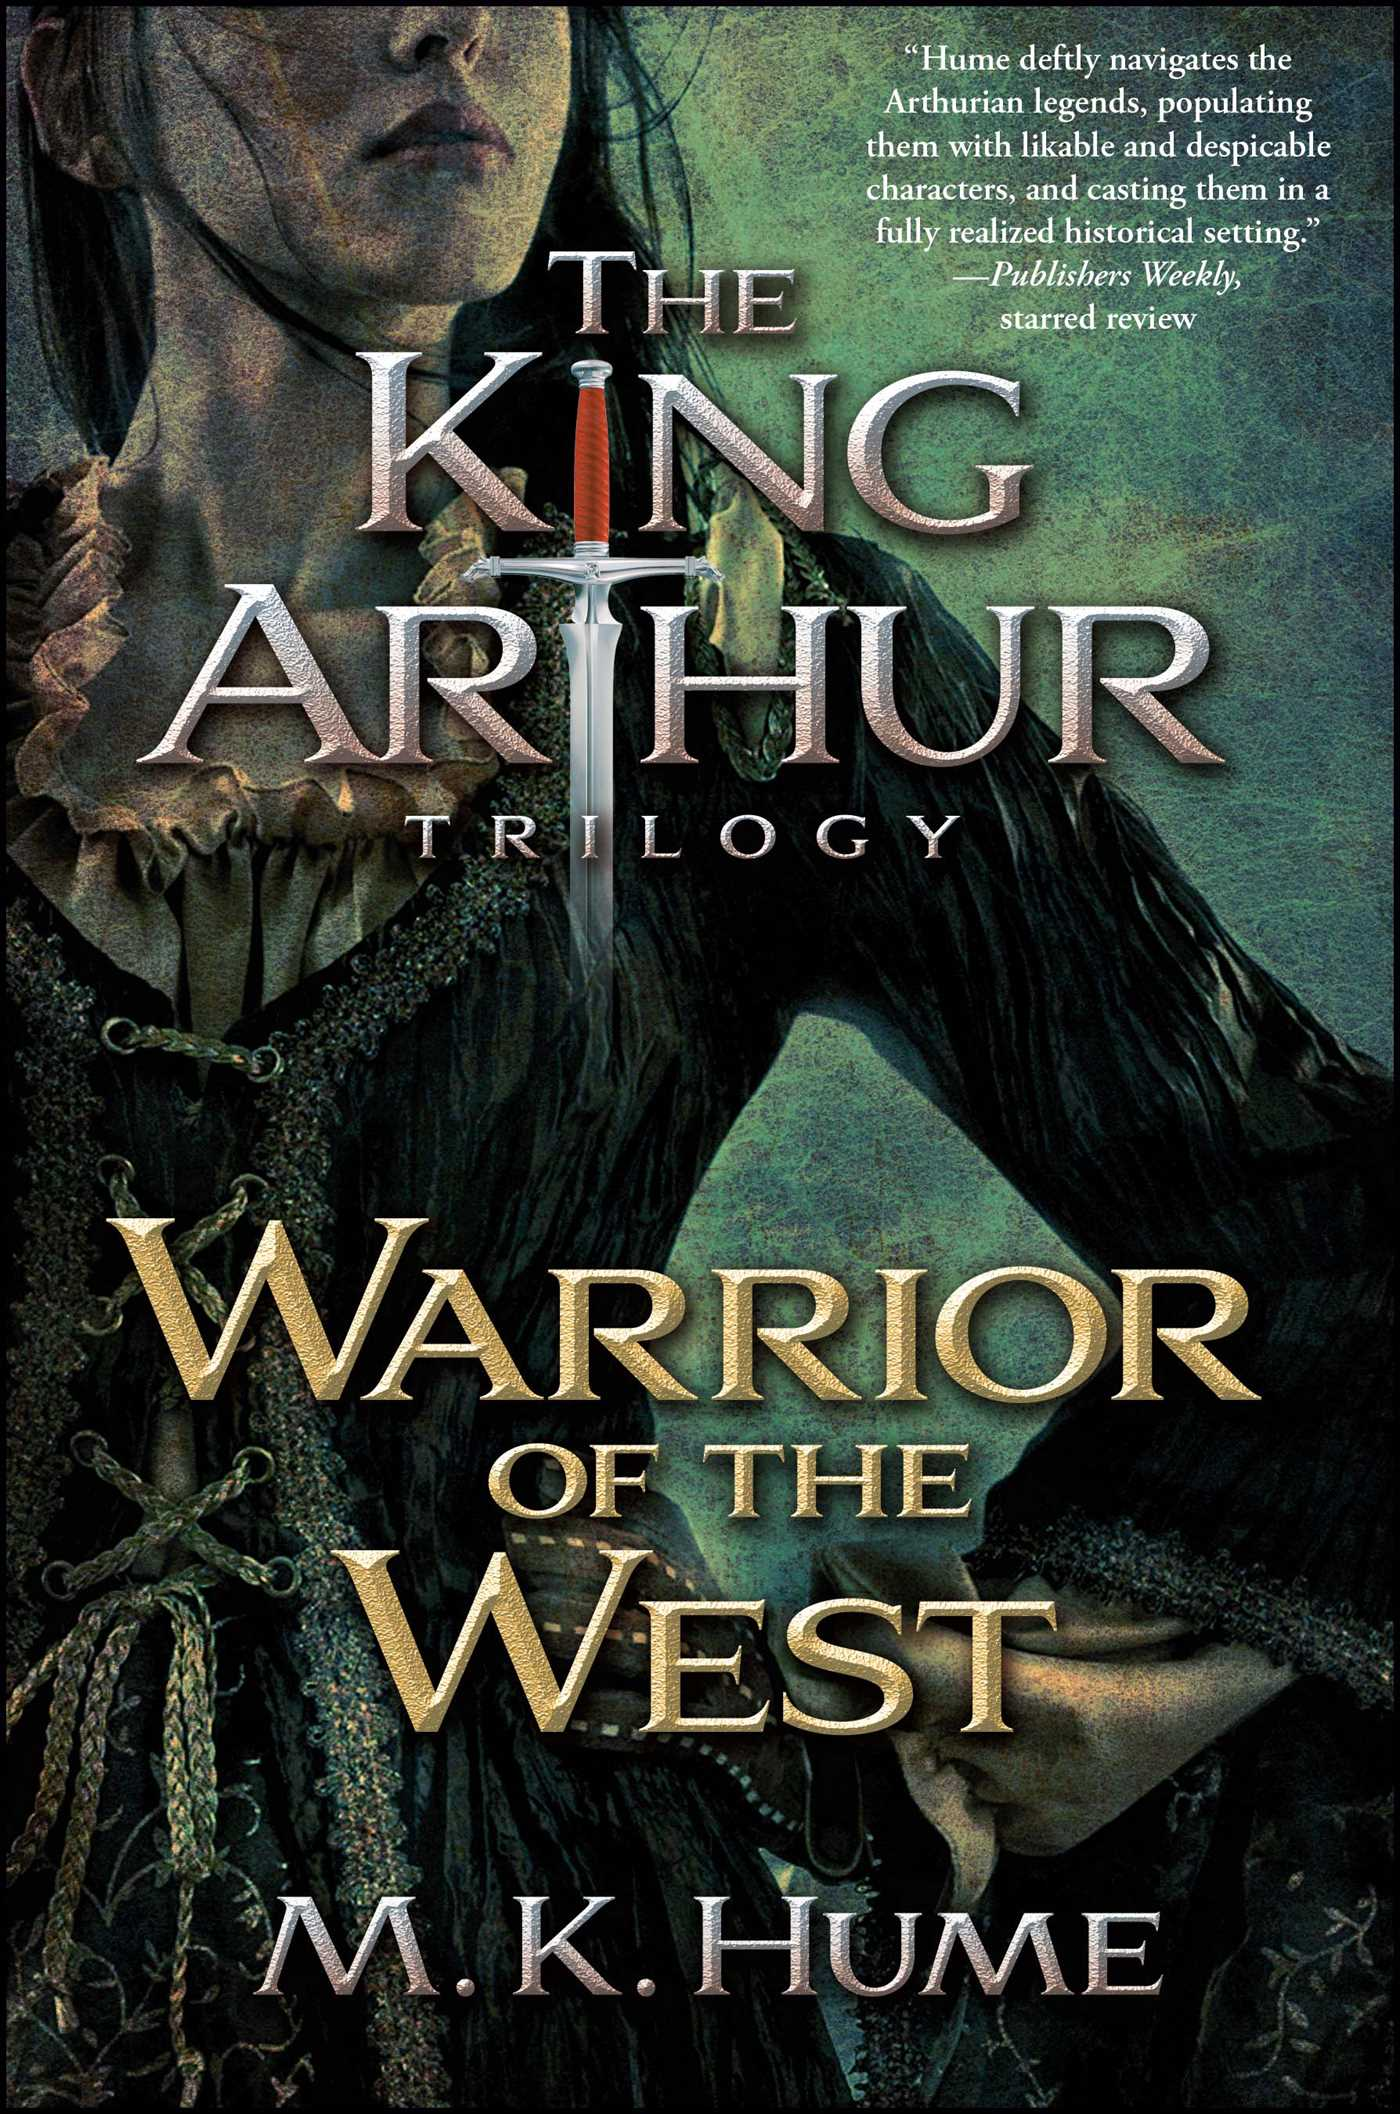 The king arthur trilogy book two warrior of the west 9781476715209 hr